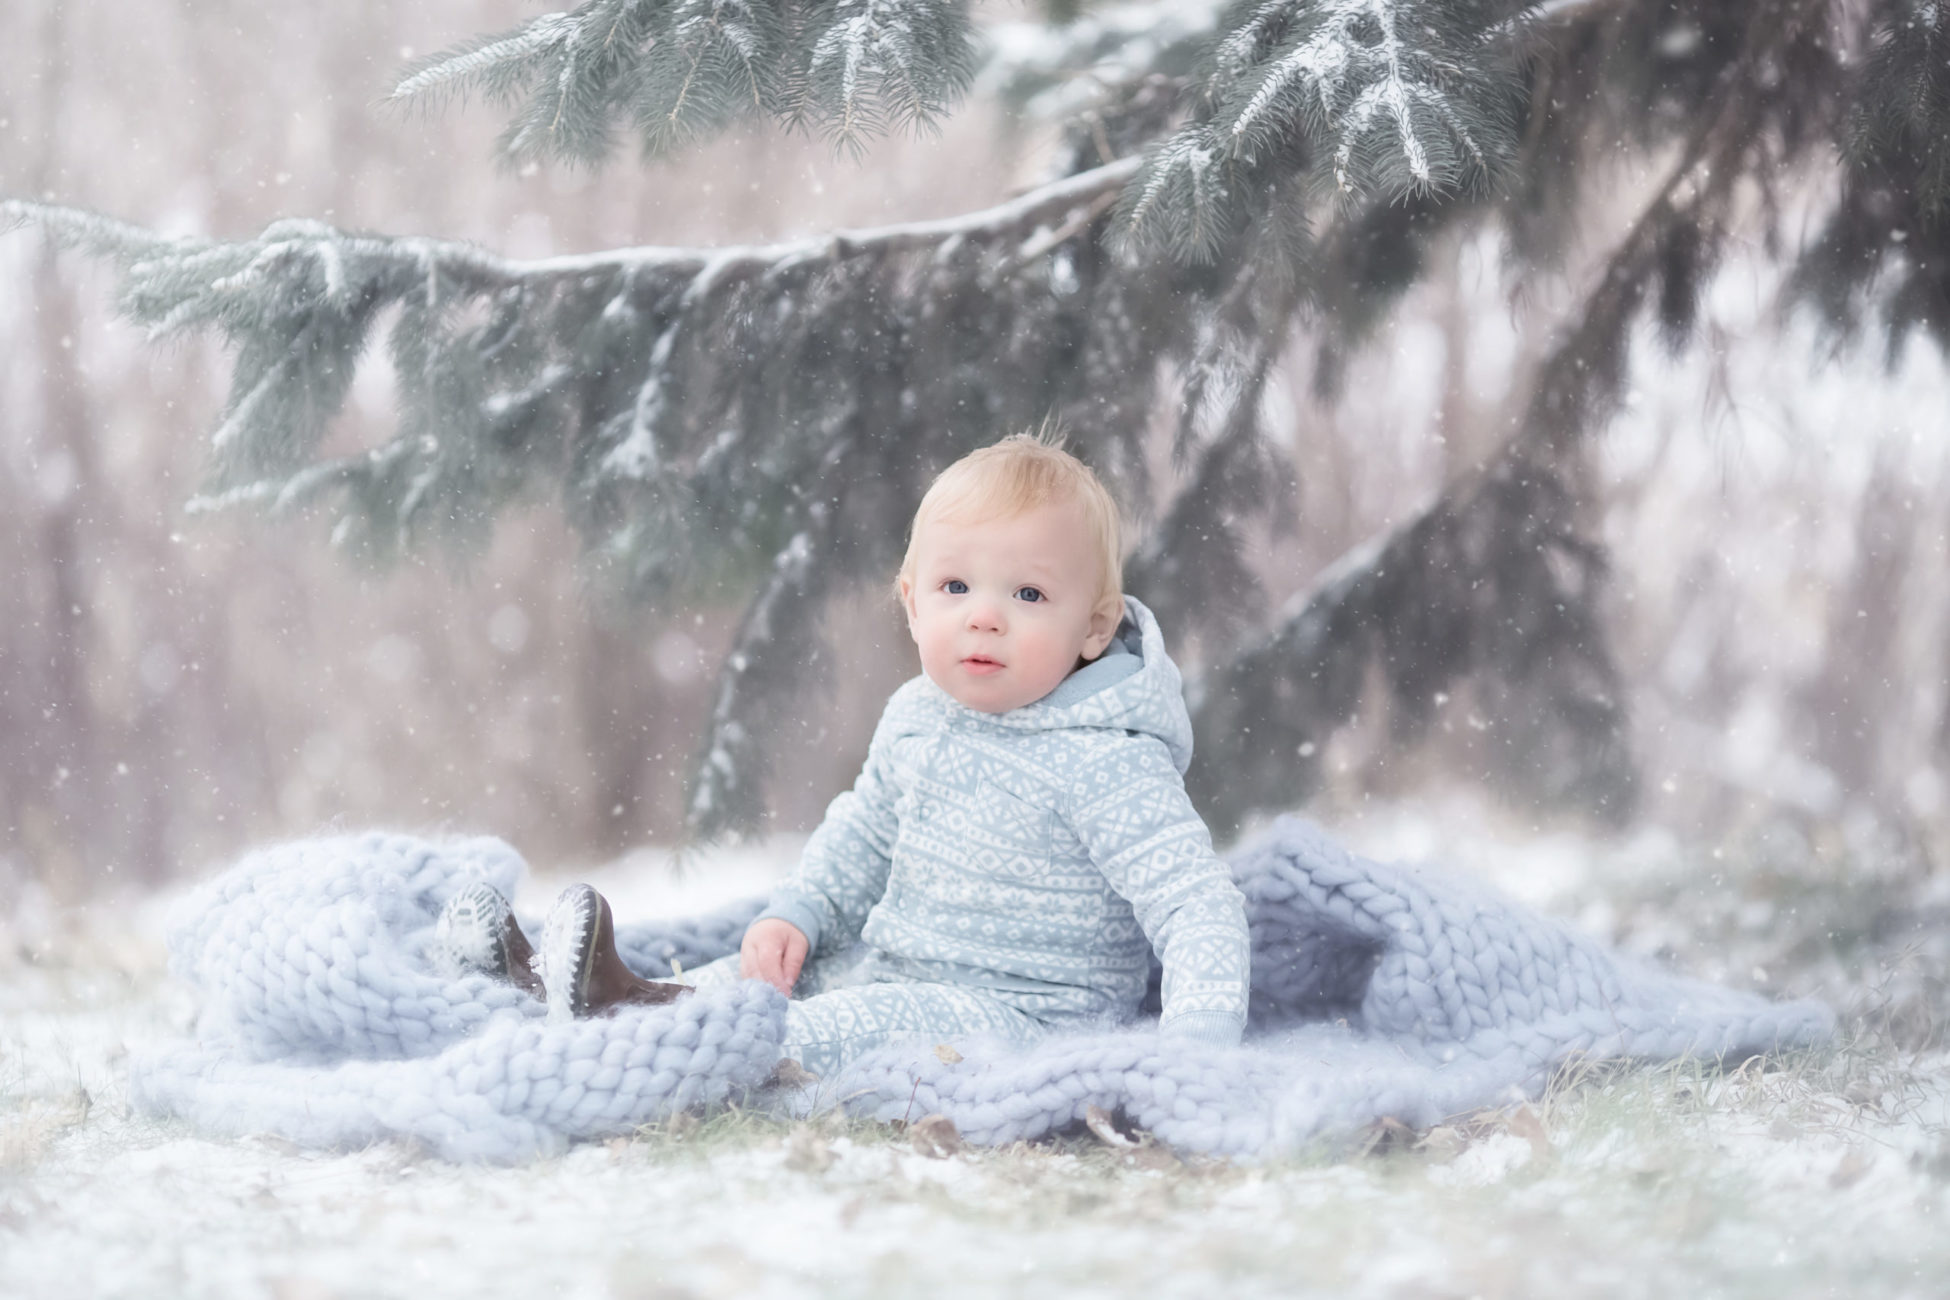 Meet Palo IA Photographer Michelle Zumbach who specializes in maternity, newborn & baby photography available in Palo, Cedar Rapids and Coralville, IA.